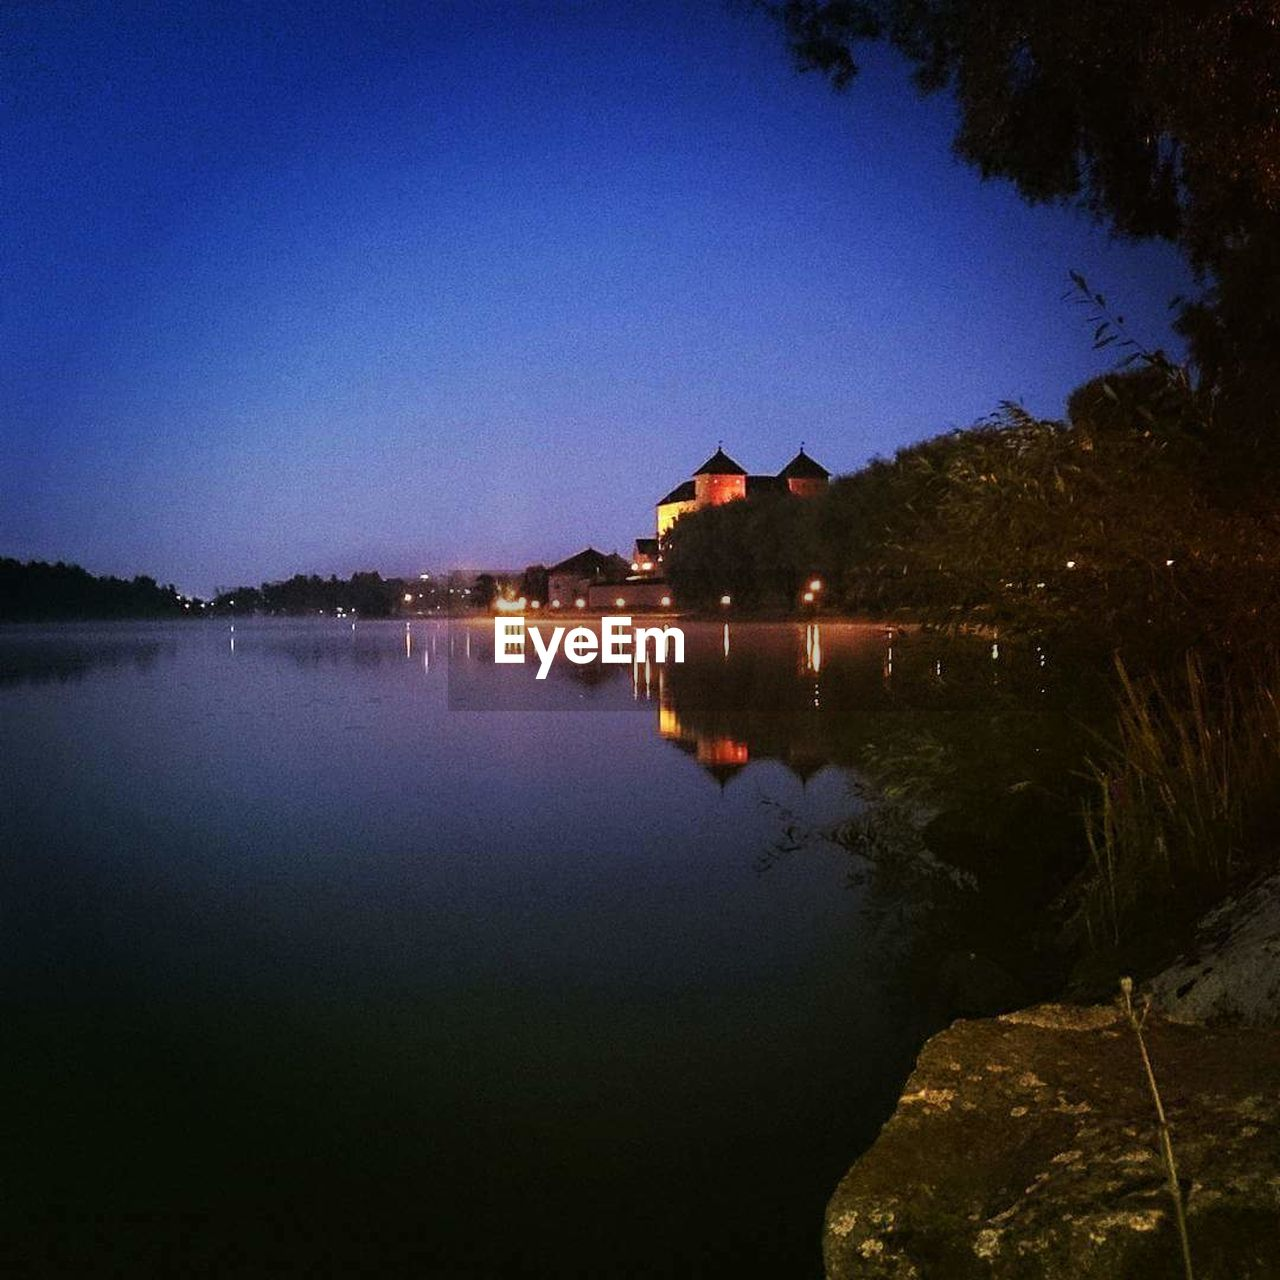 water, reflection, outdoors, no people, lake, built structure, night, architecture, nature, sky, tranquil scene, tranquility, scenics, blue, building exterior, illuminated, beauty in nature